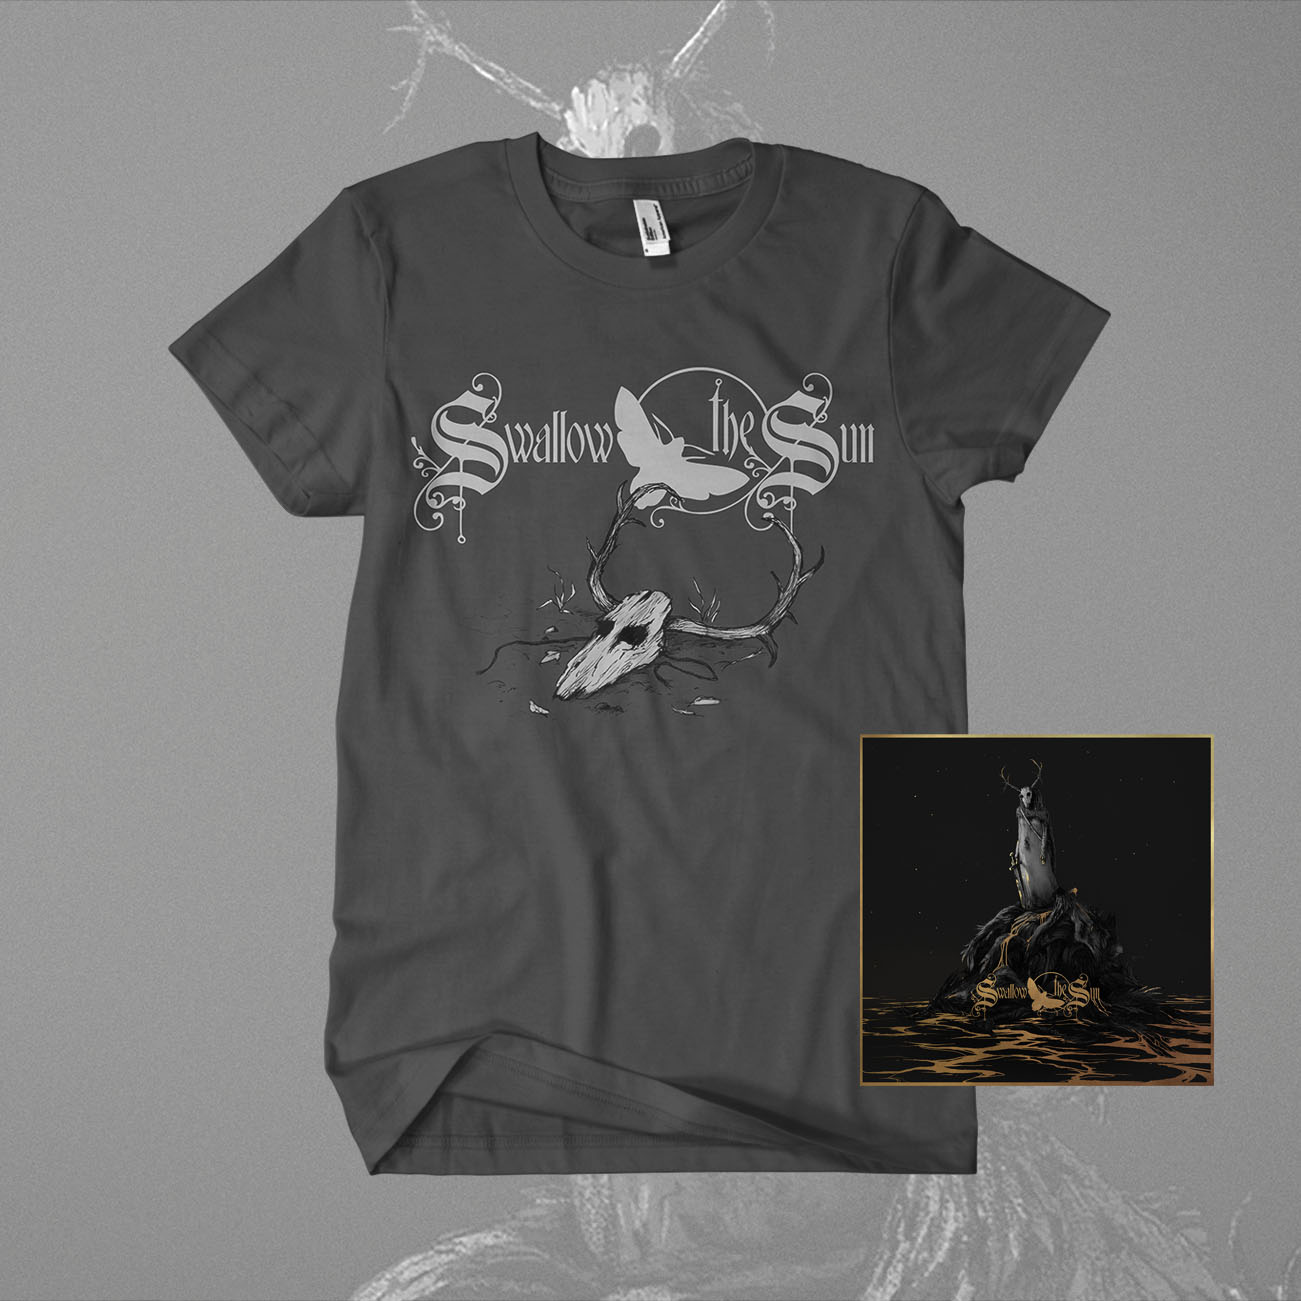 Swallow The Sun  - 'When A Shadow Is Forced Into The Light' Ltd Digi CD + T-Shirt Bundle - Swallow The Sun